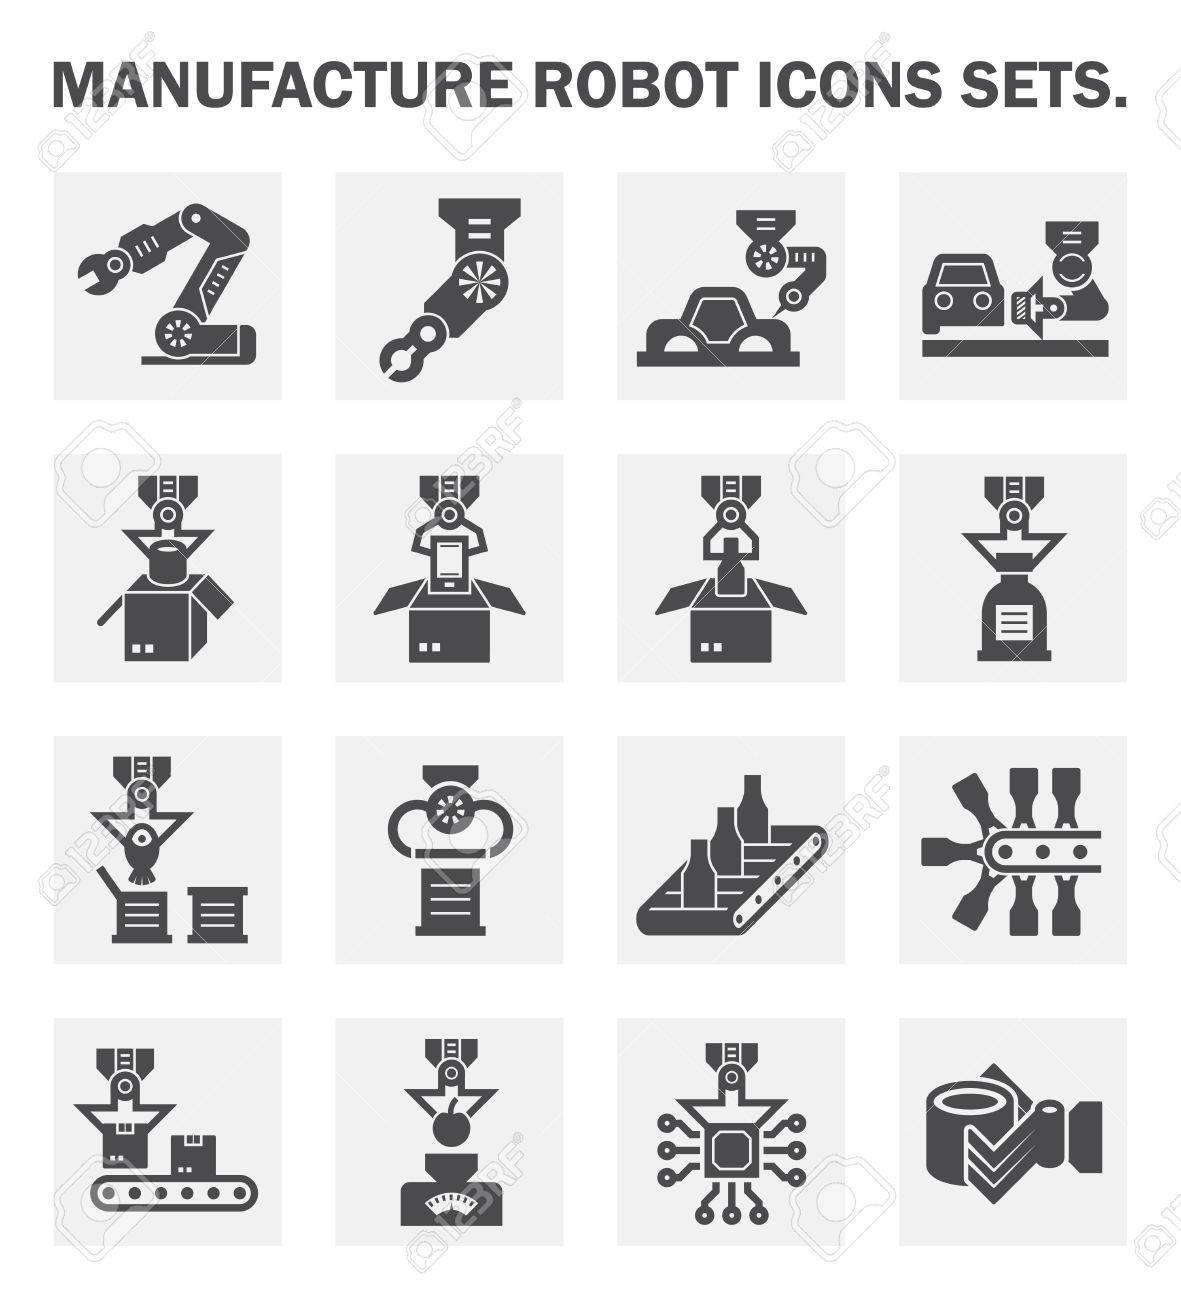 Manufacture robot icons sets. - 45839789